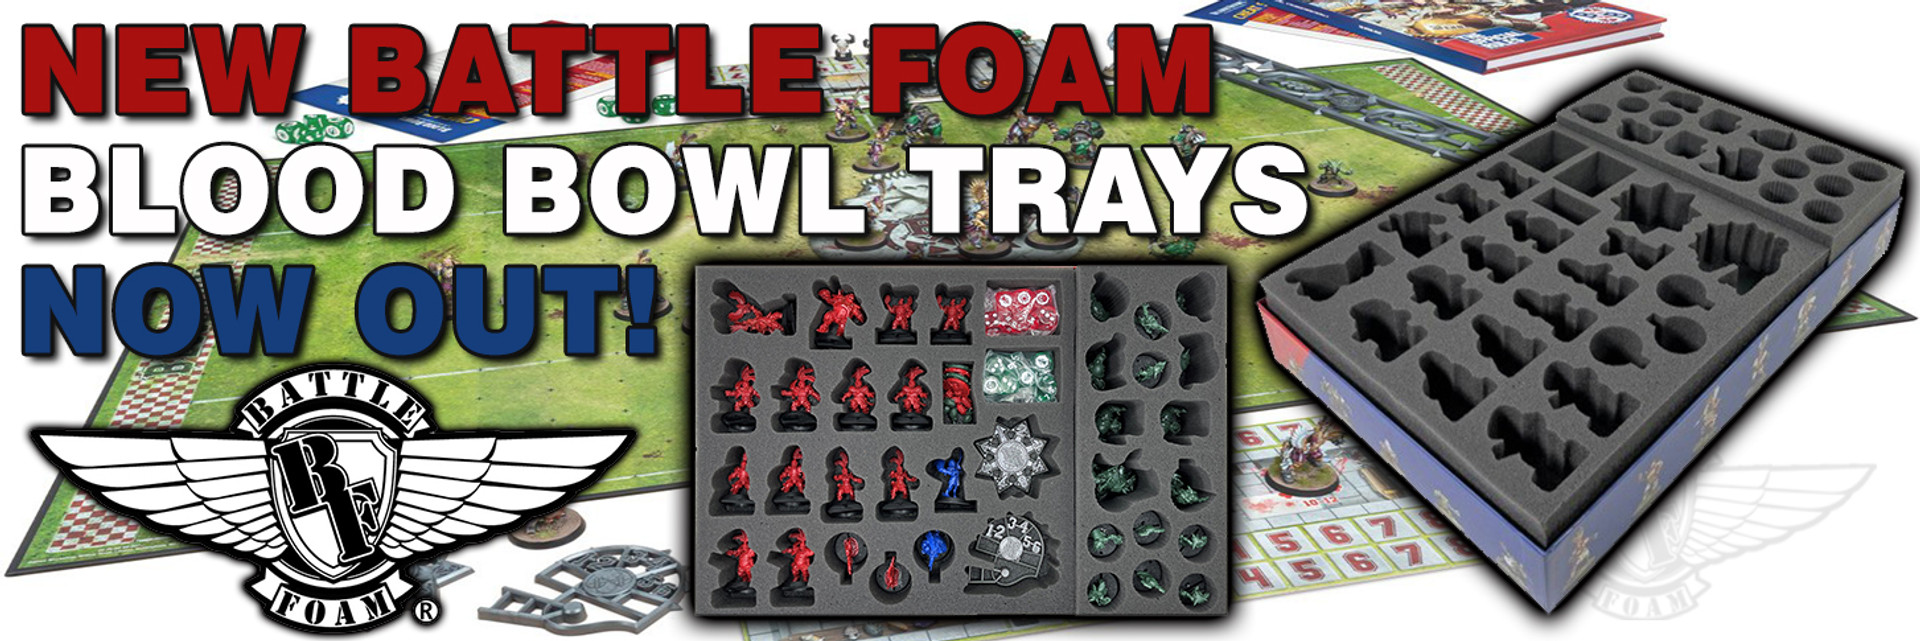 Battlefoam Uk – Unfollow battlefoam to stop getting updates on your ebay feed.